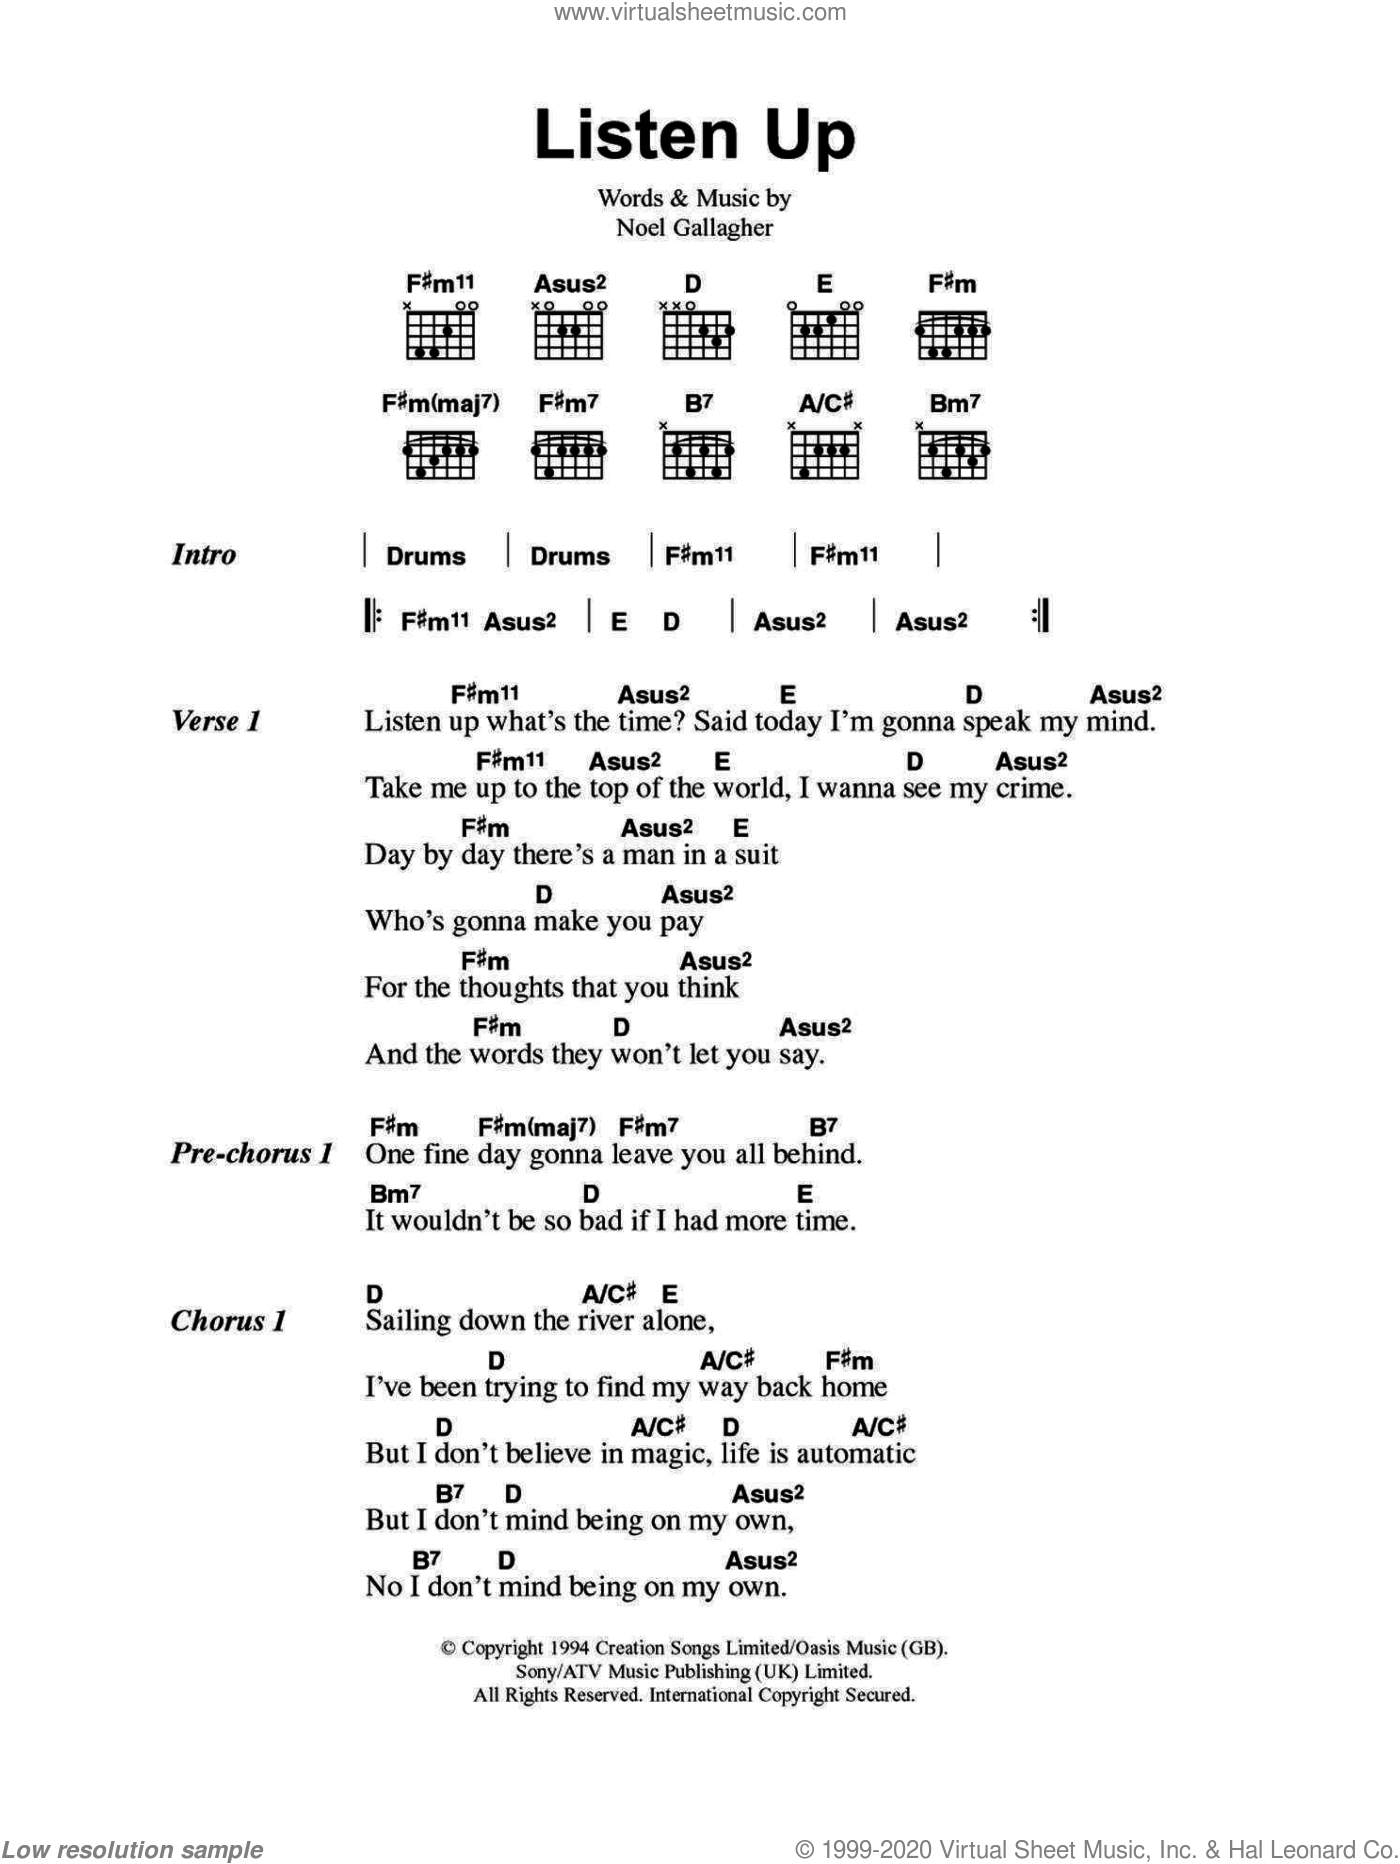 Listen Up sheet music for guitar (chords, lyrics, melody) by Noel Gallagher